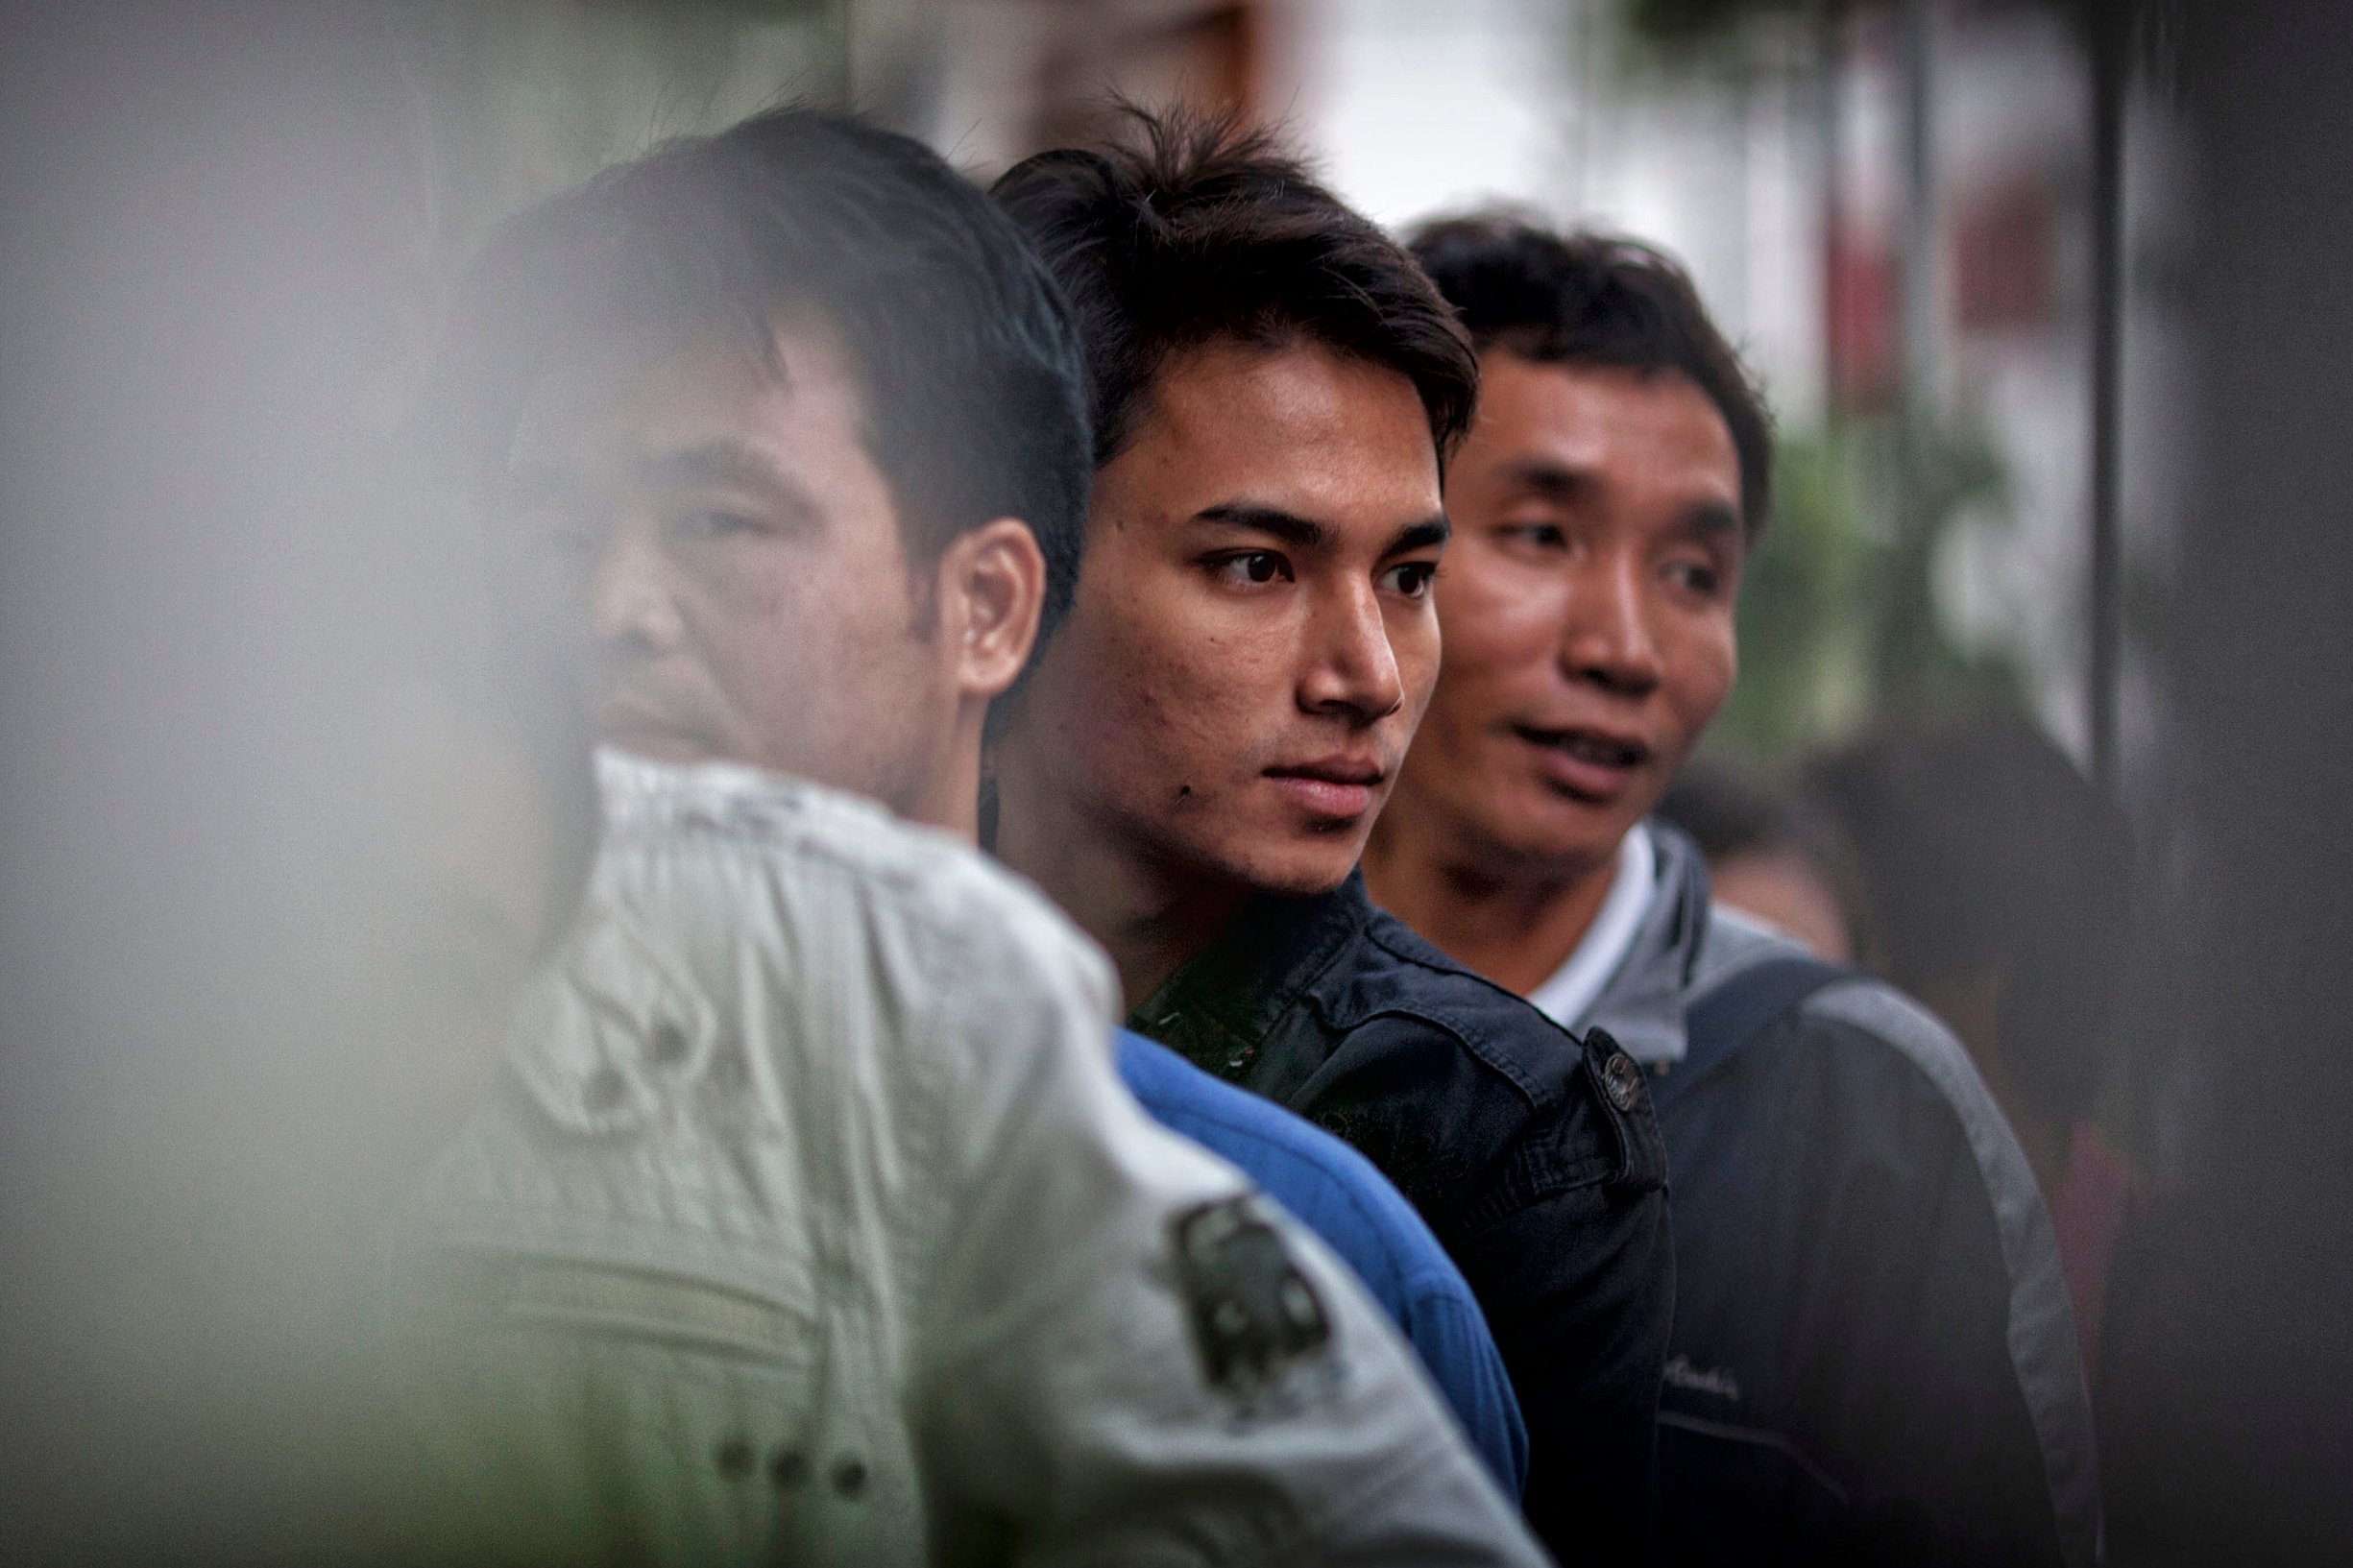 A group of young Burmese men wait to clear immigration at the Friendship Bridge at the Thailand-Border checkpoint in Mae Sot, Thailand. Thousands of men each year migrate to Thailand in search of work